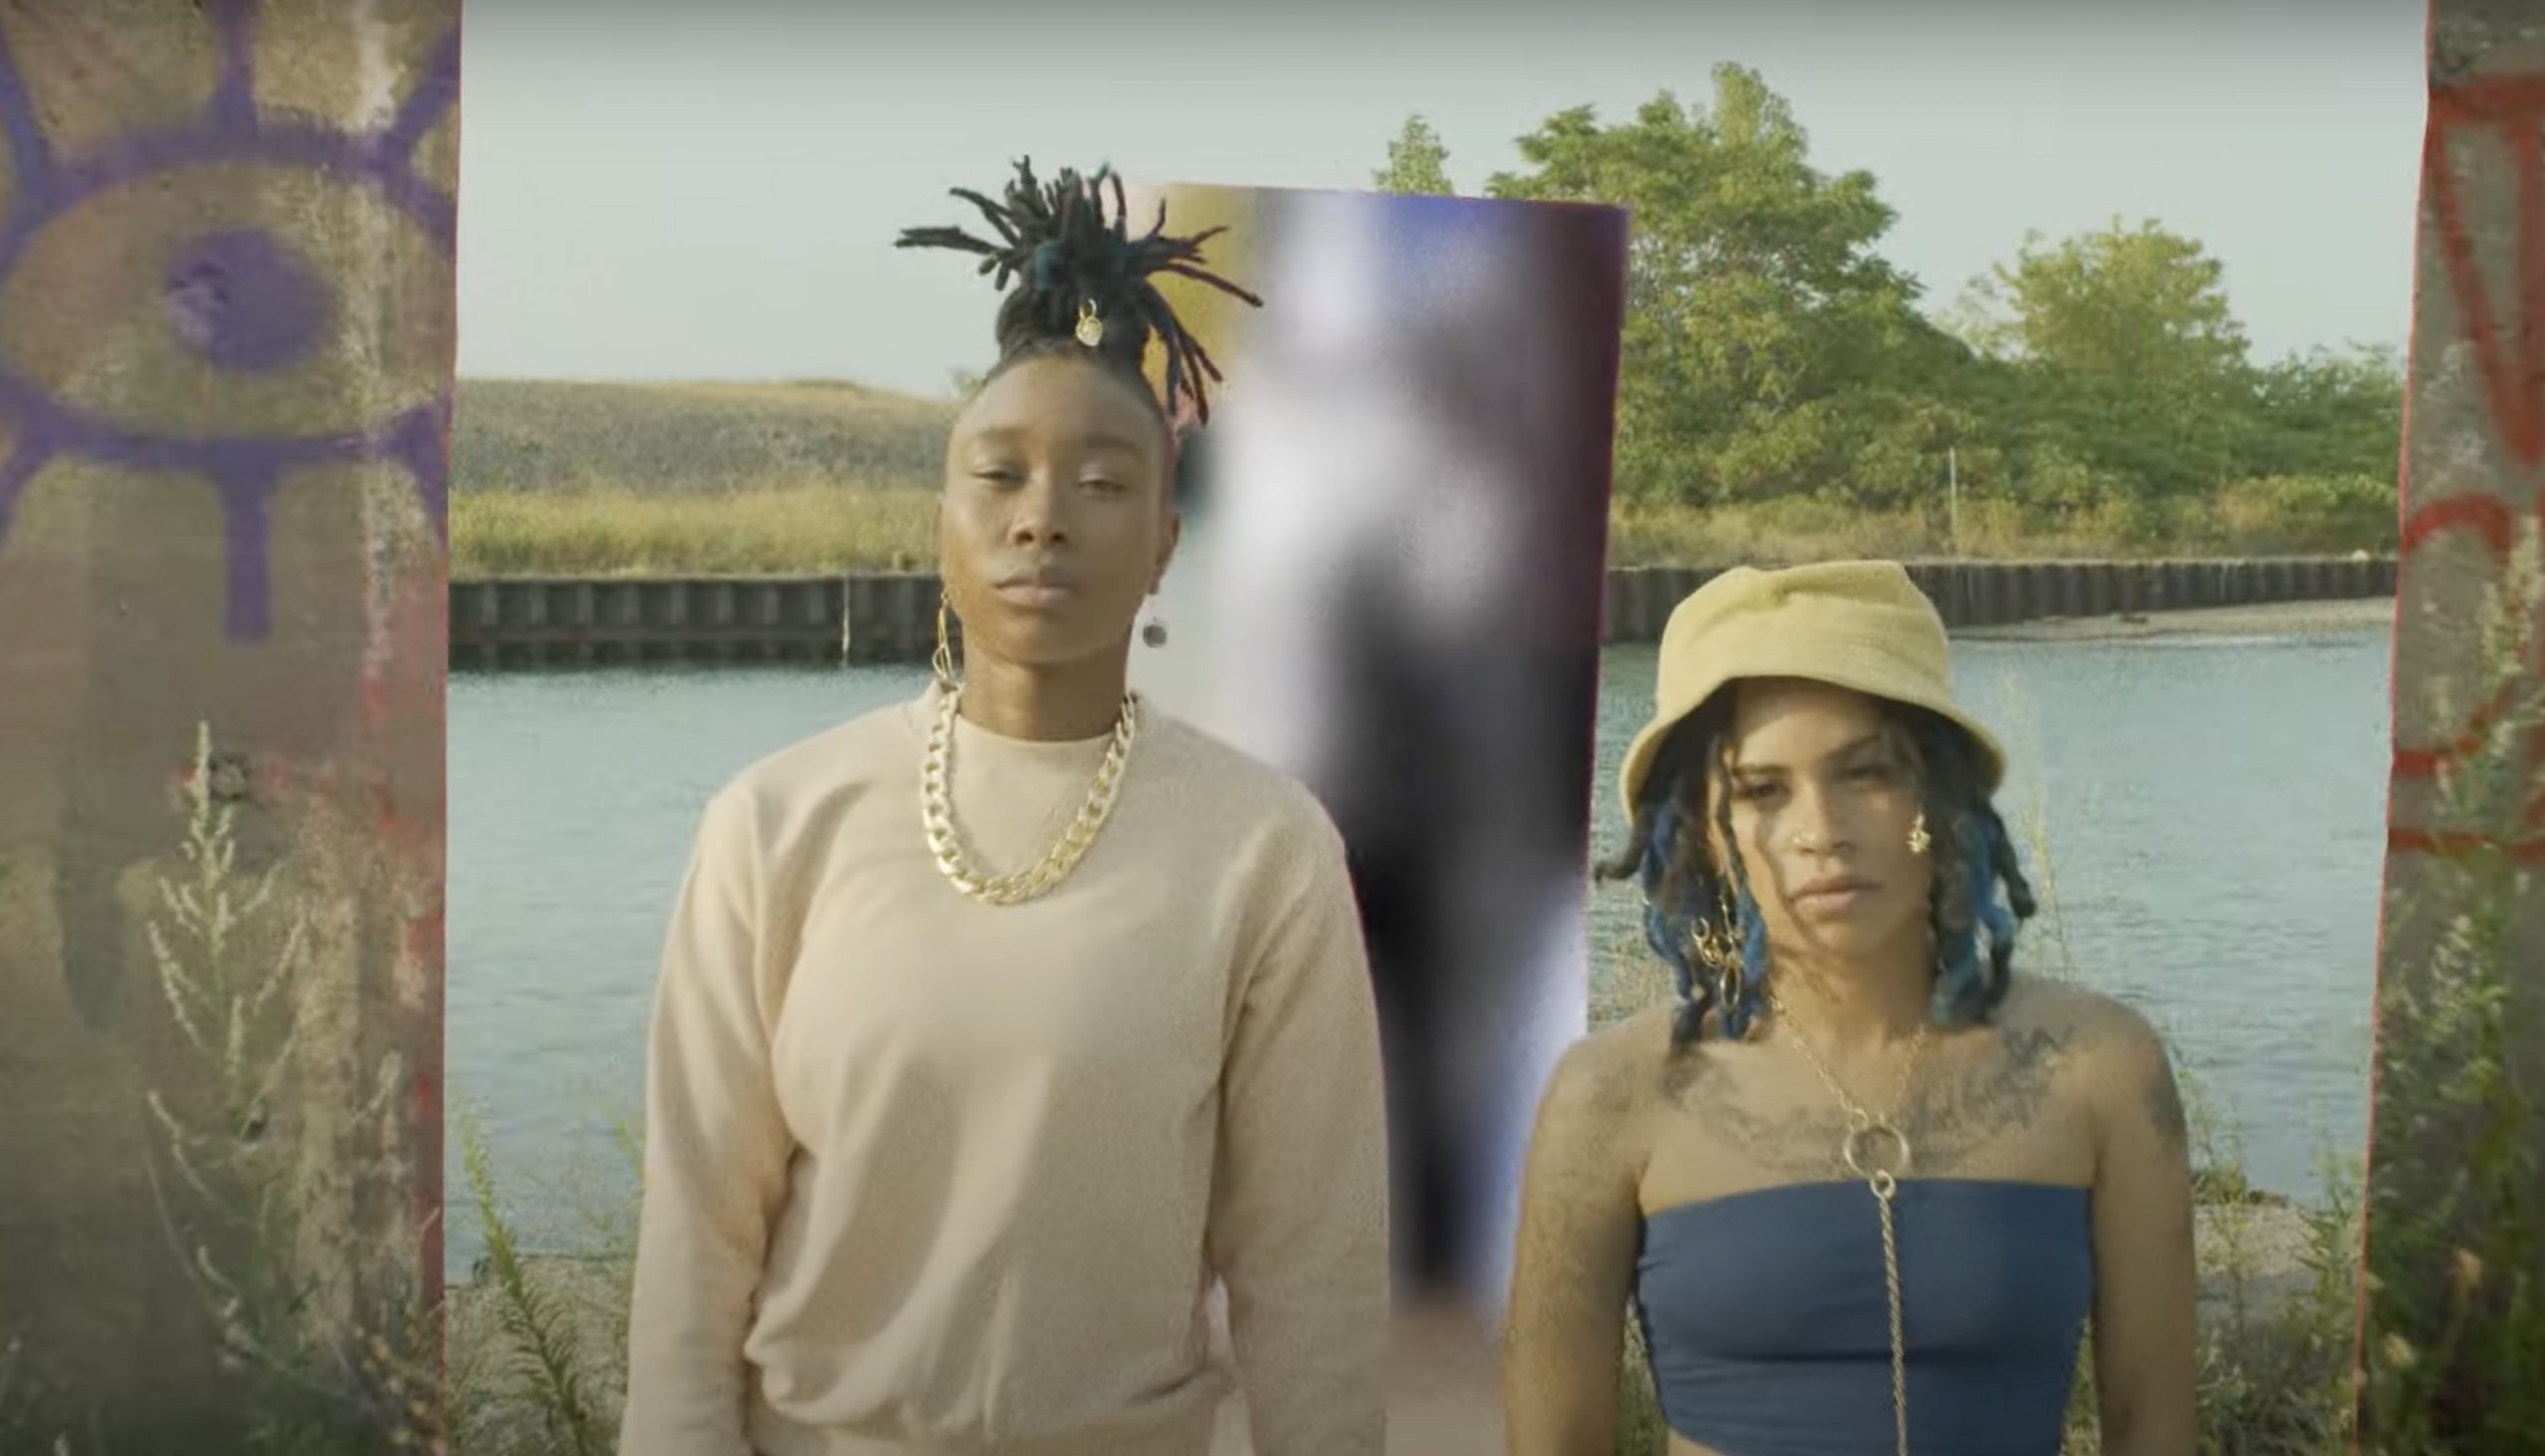 Female rappers Mother Nature